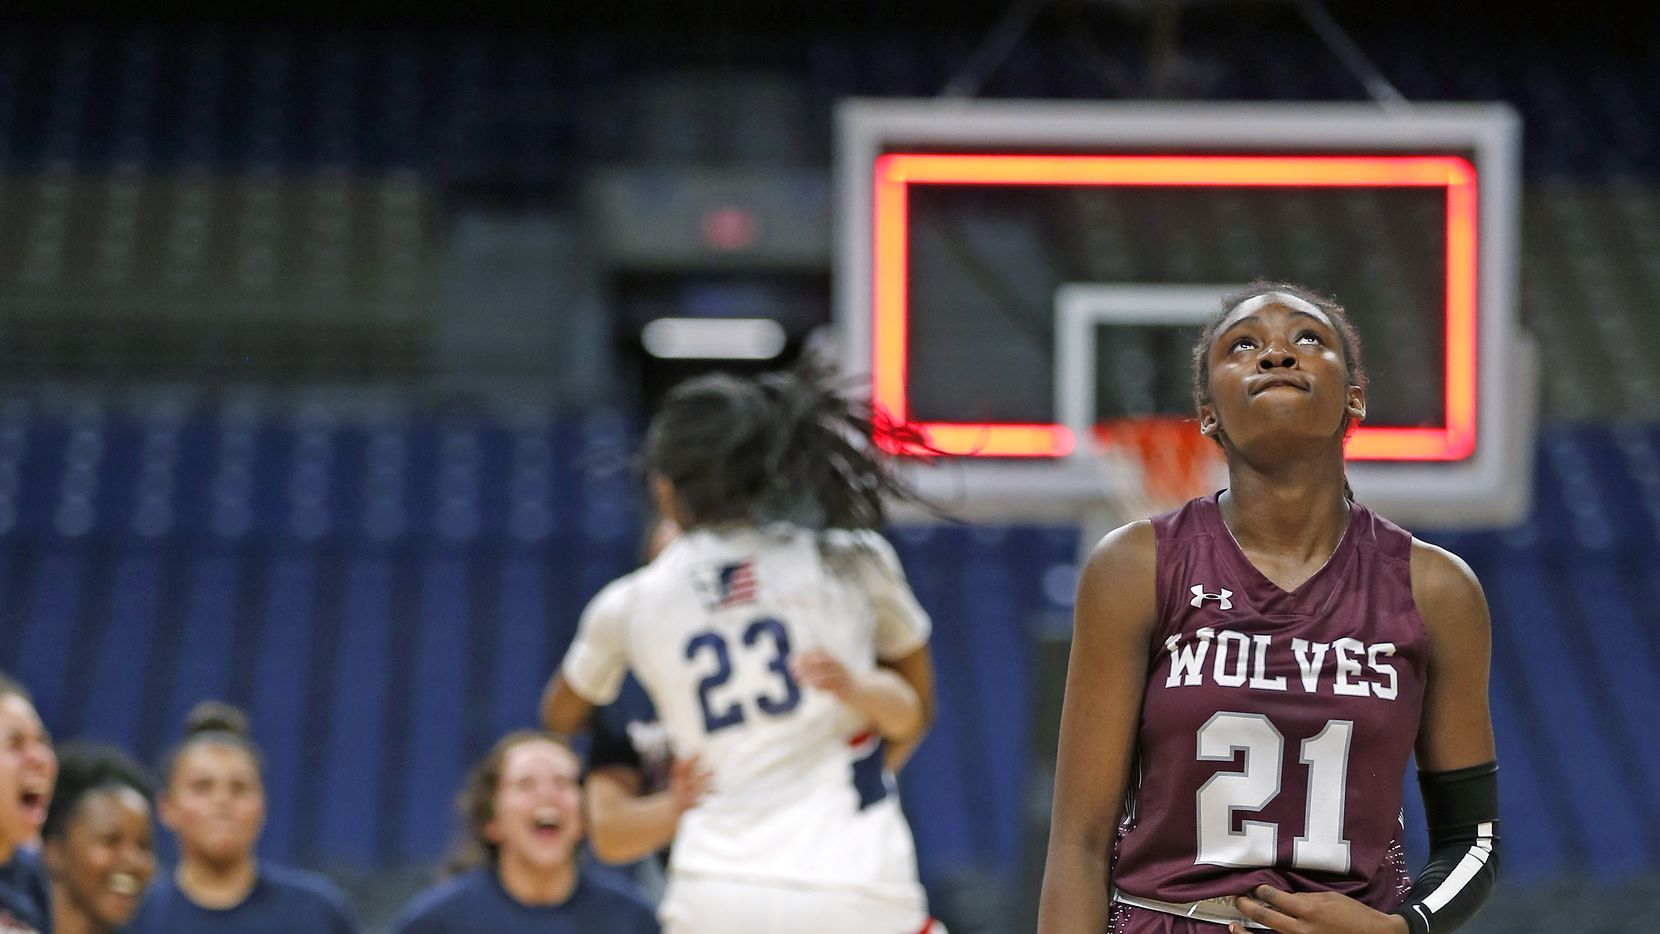 Mansfield Timberview Forward Stephanie Mosley #21 looks up as SA Veterans celebrates in background in a 5A semifinal on Thursday, March 5, 2020 at the Alamodome. San Antonio Veterans defeated Mansfield Timberview 45-44.